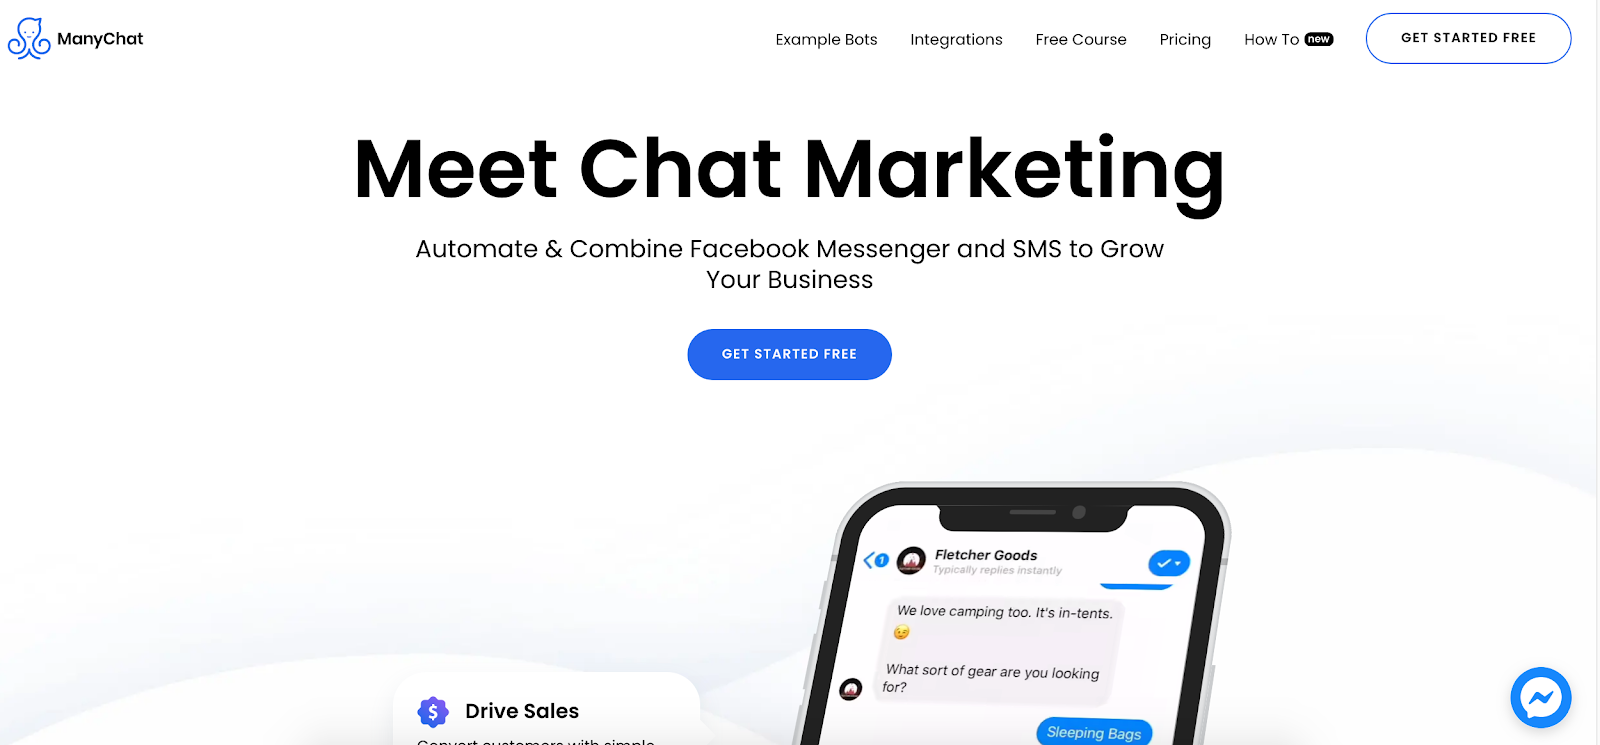 Manychat marketing software homepage